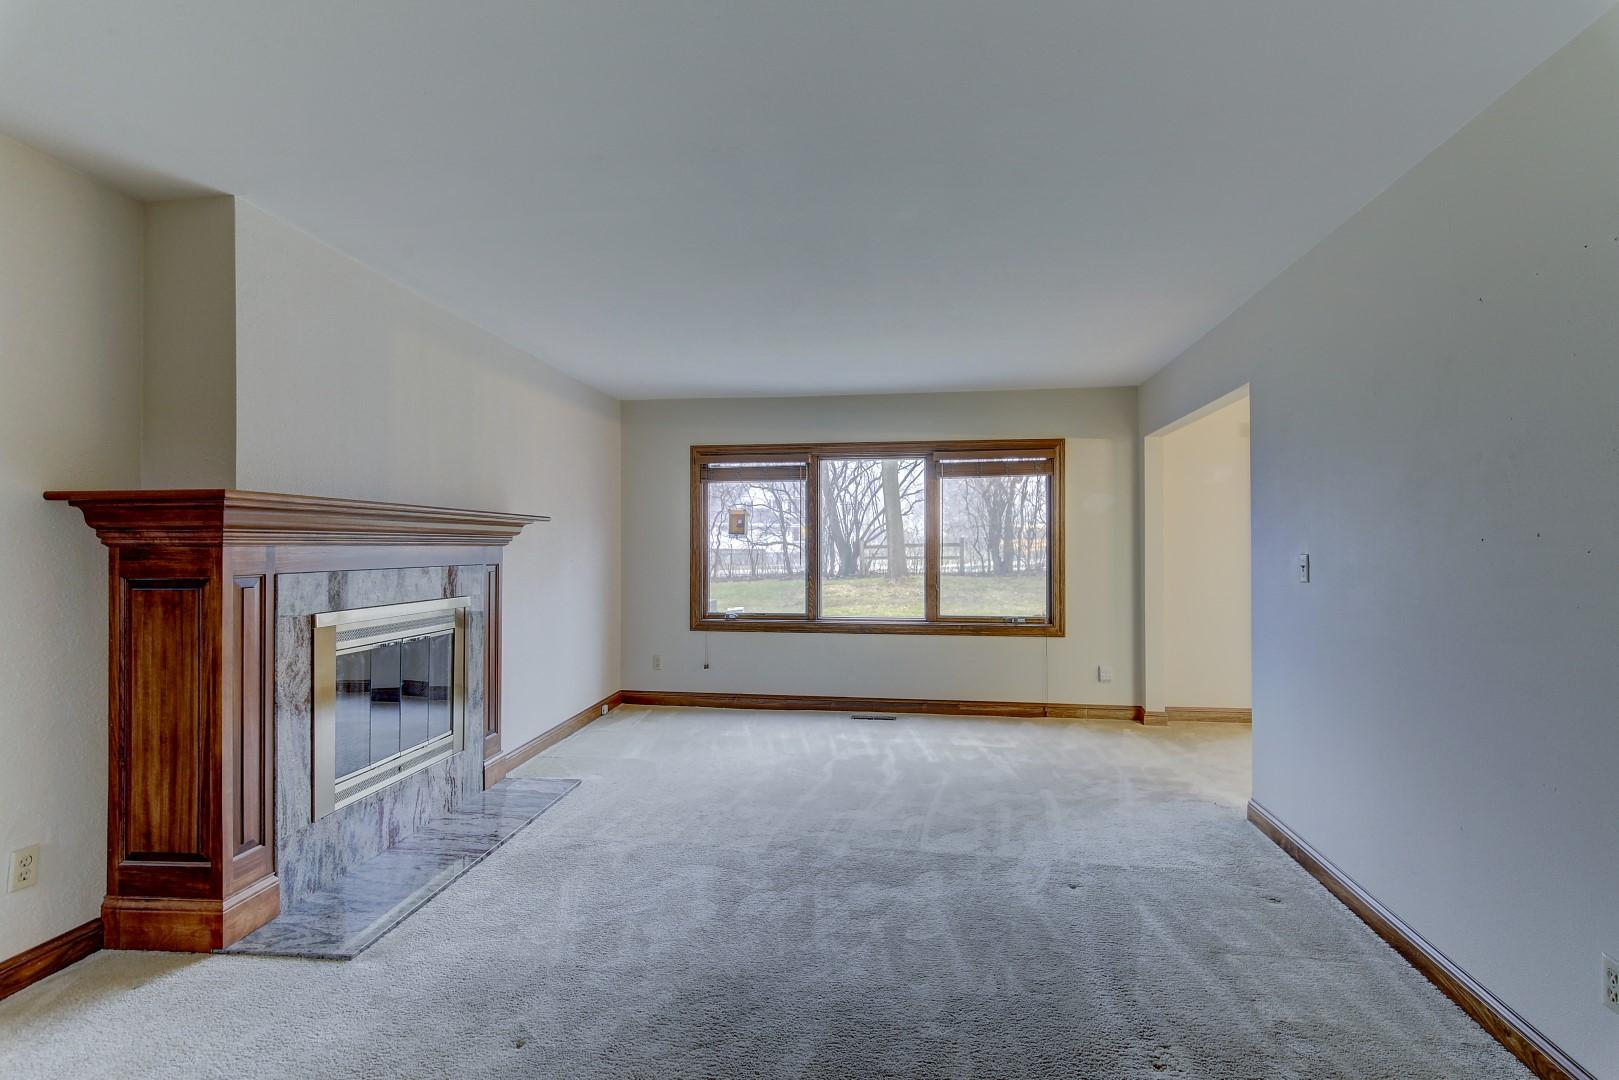 991 Lake Country Ct, Oconomowoc, Wisconsin 53066, 3 Bedrooms Bedrooms, 7 Rooms Rooms,1 BathroomBathrooms,Condominiums,For Sale,Lake Country Ct,1,1617479